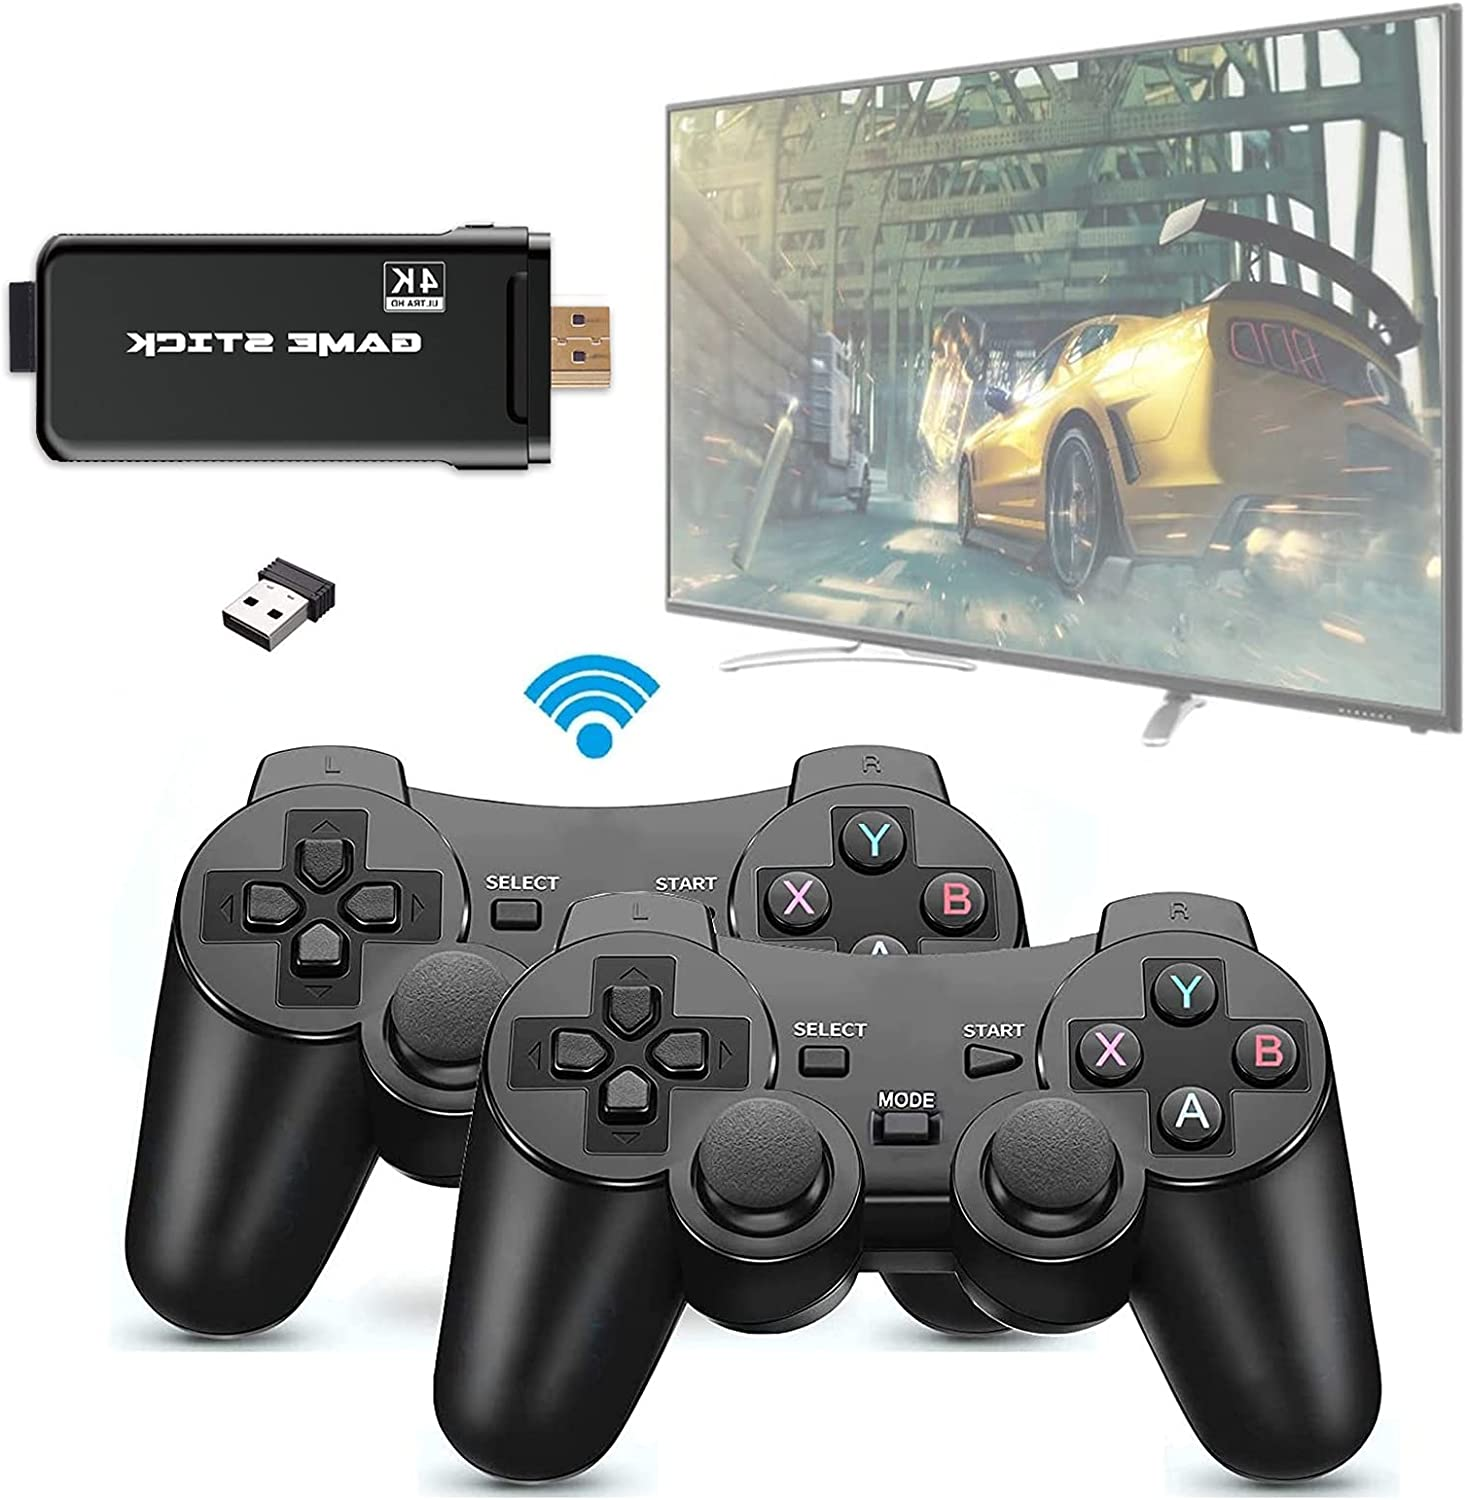 LXYFMS 2021NEW USB Game Console Plug Host Play and Mini Portable 67% OFF of fixed price outlet